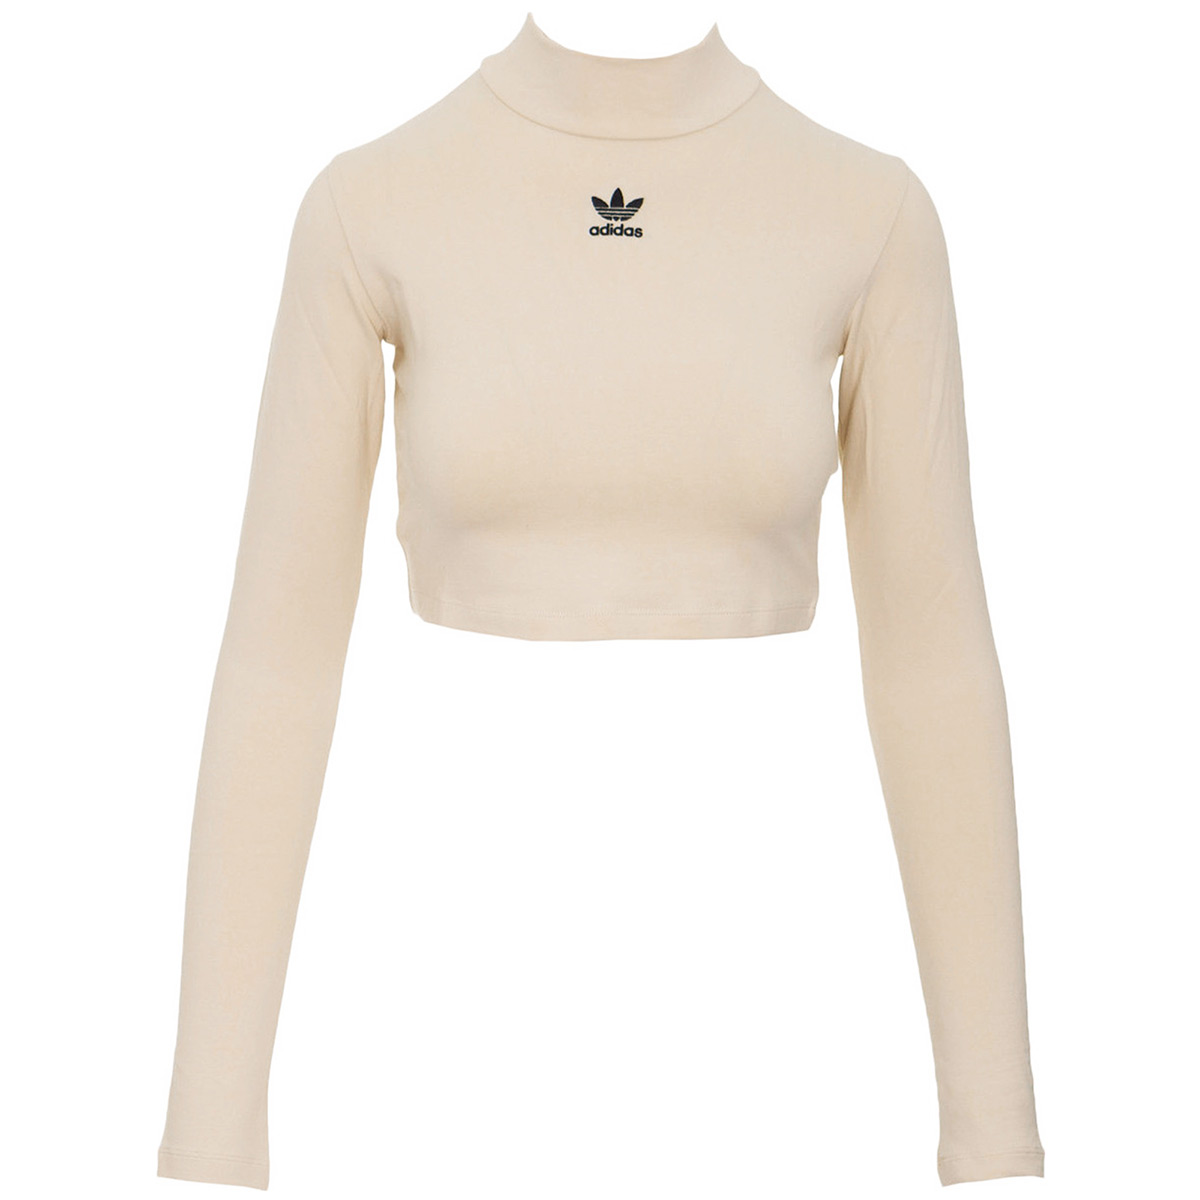 Vêtement Adidas Femme Top Crop About Sc Shirts Details T Ls OPknN8w0X